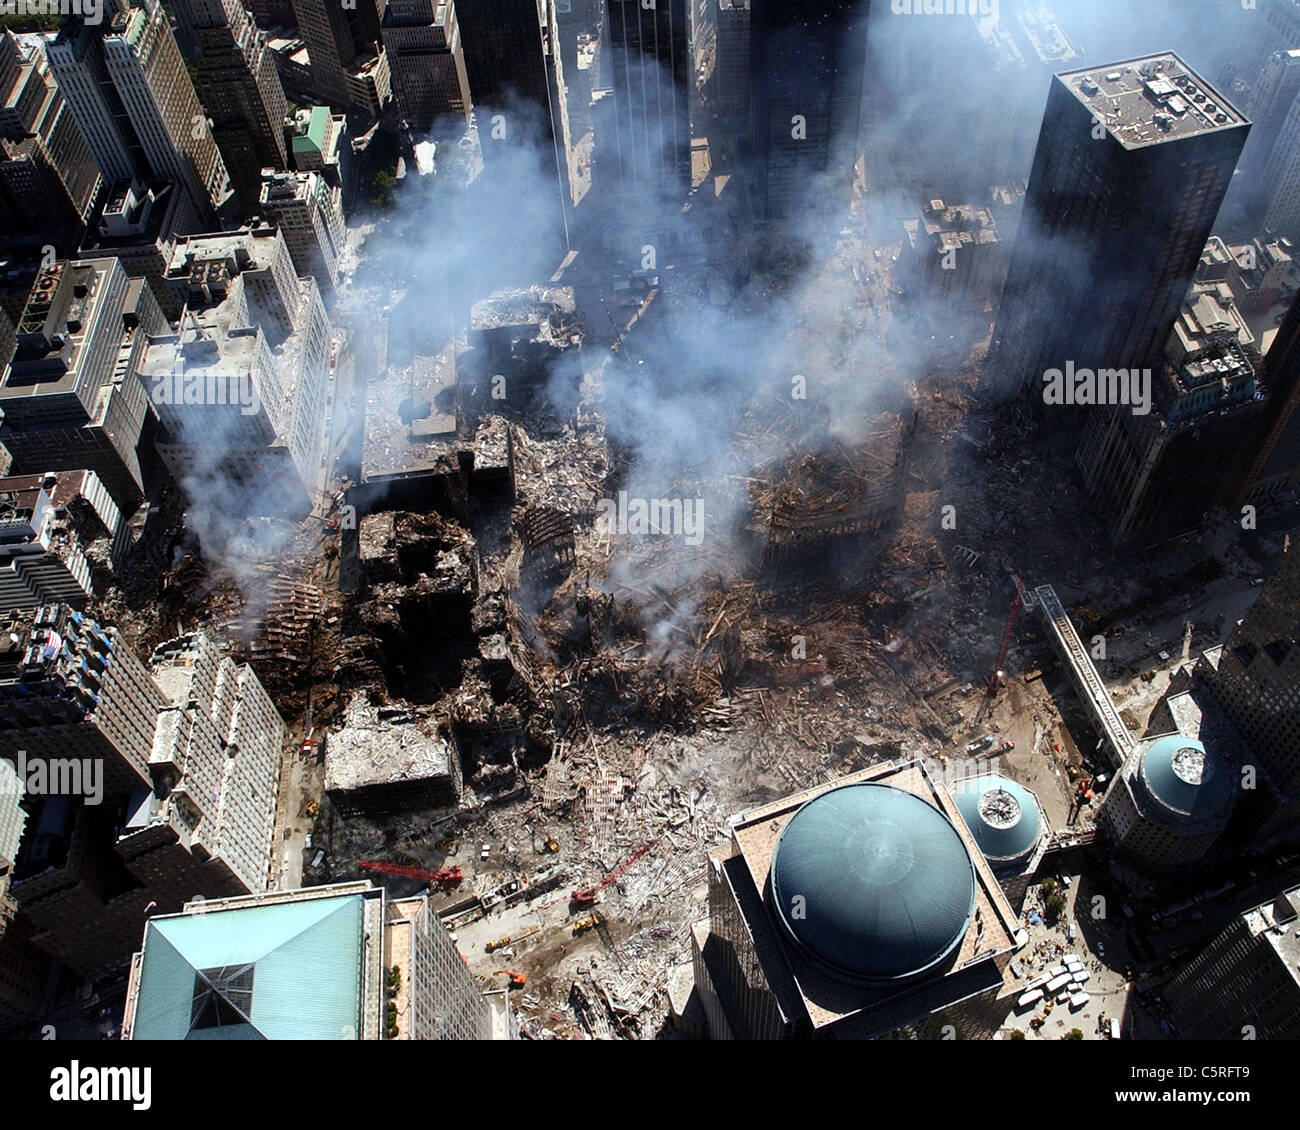 Aerial view of smoking ruins of ground zero, the World Trade Center following the 911 terrorist attacks - Stock Image